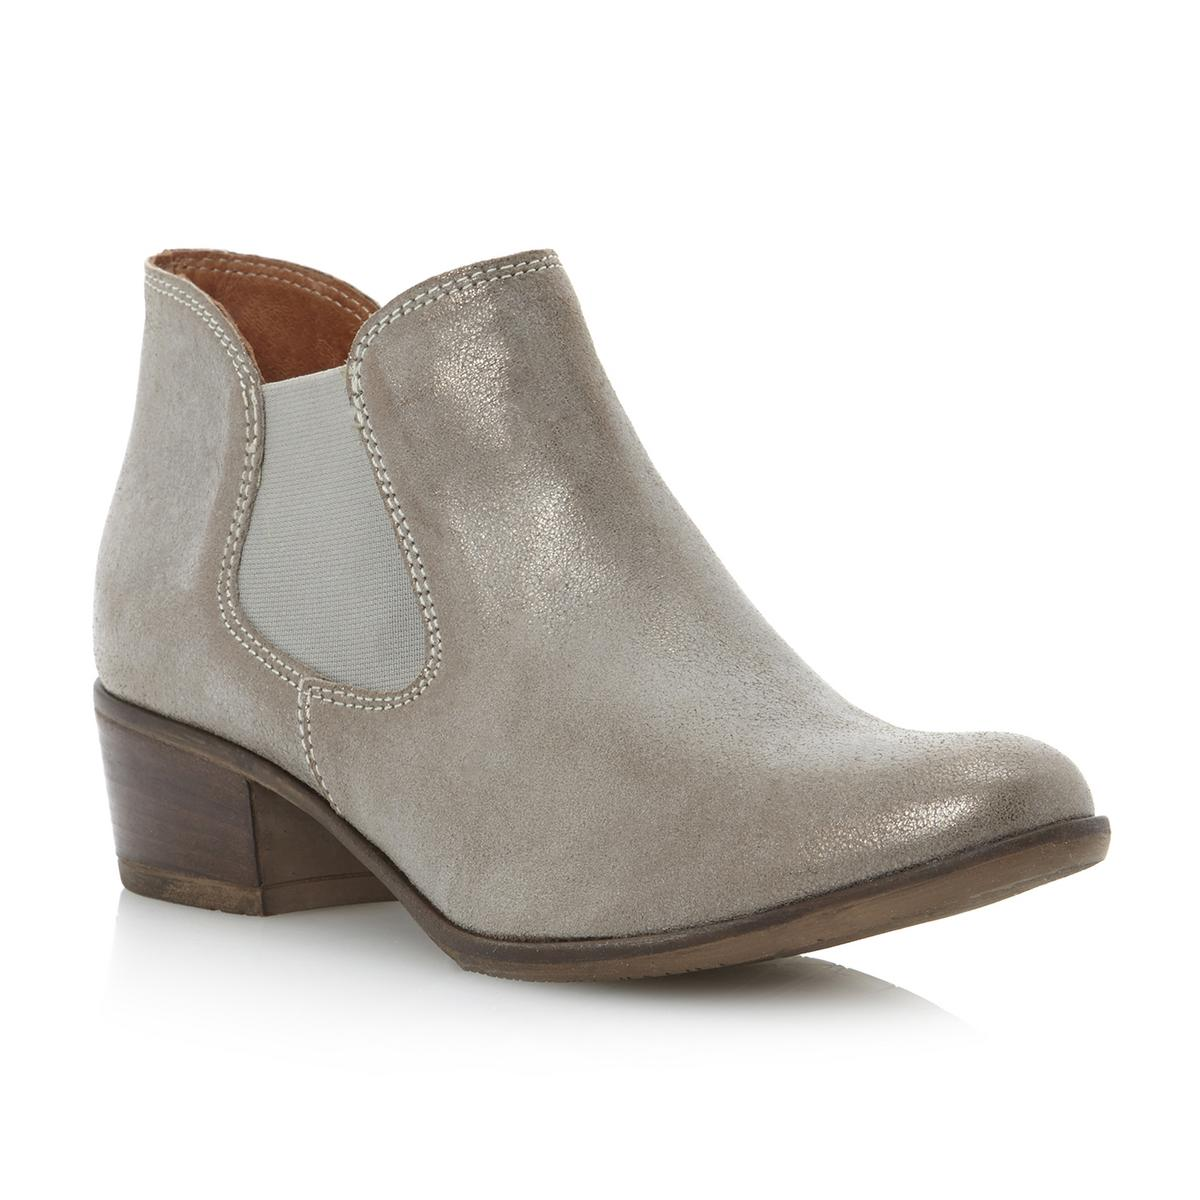 23 excellent womens low ankle boots sobatapk